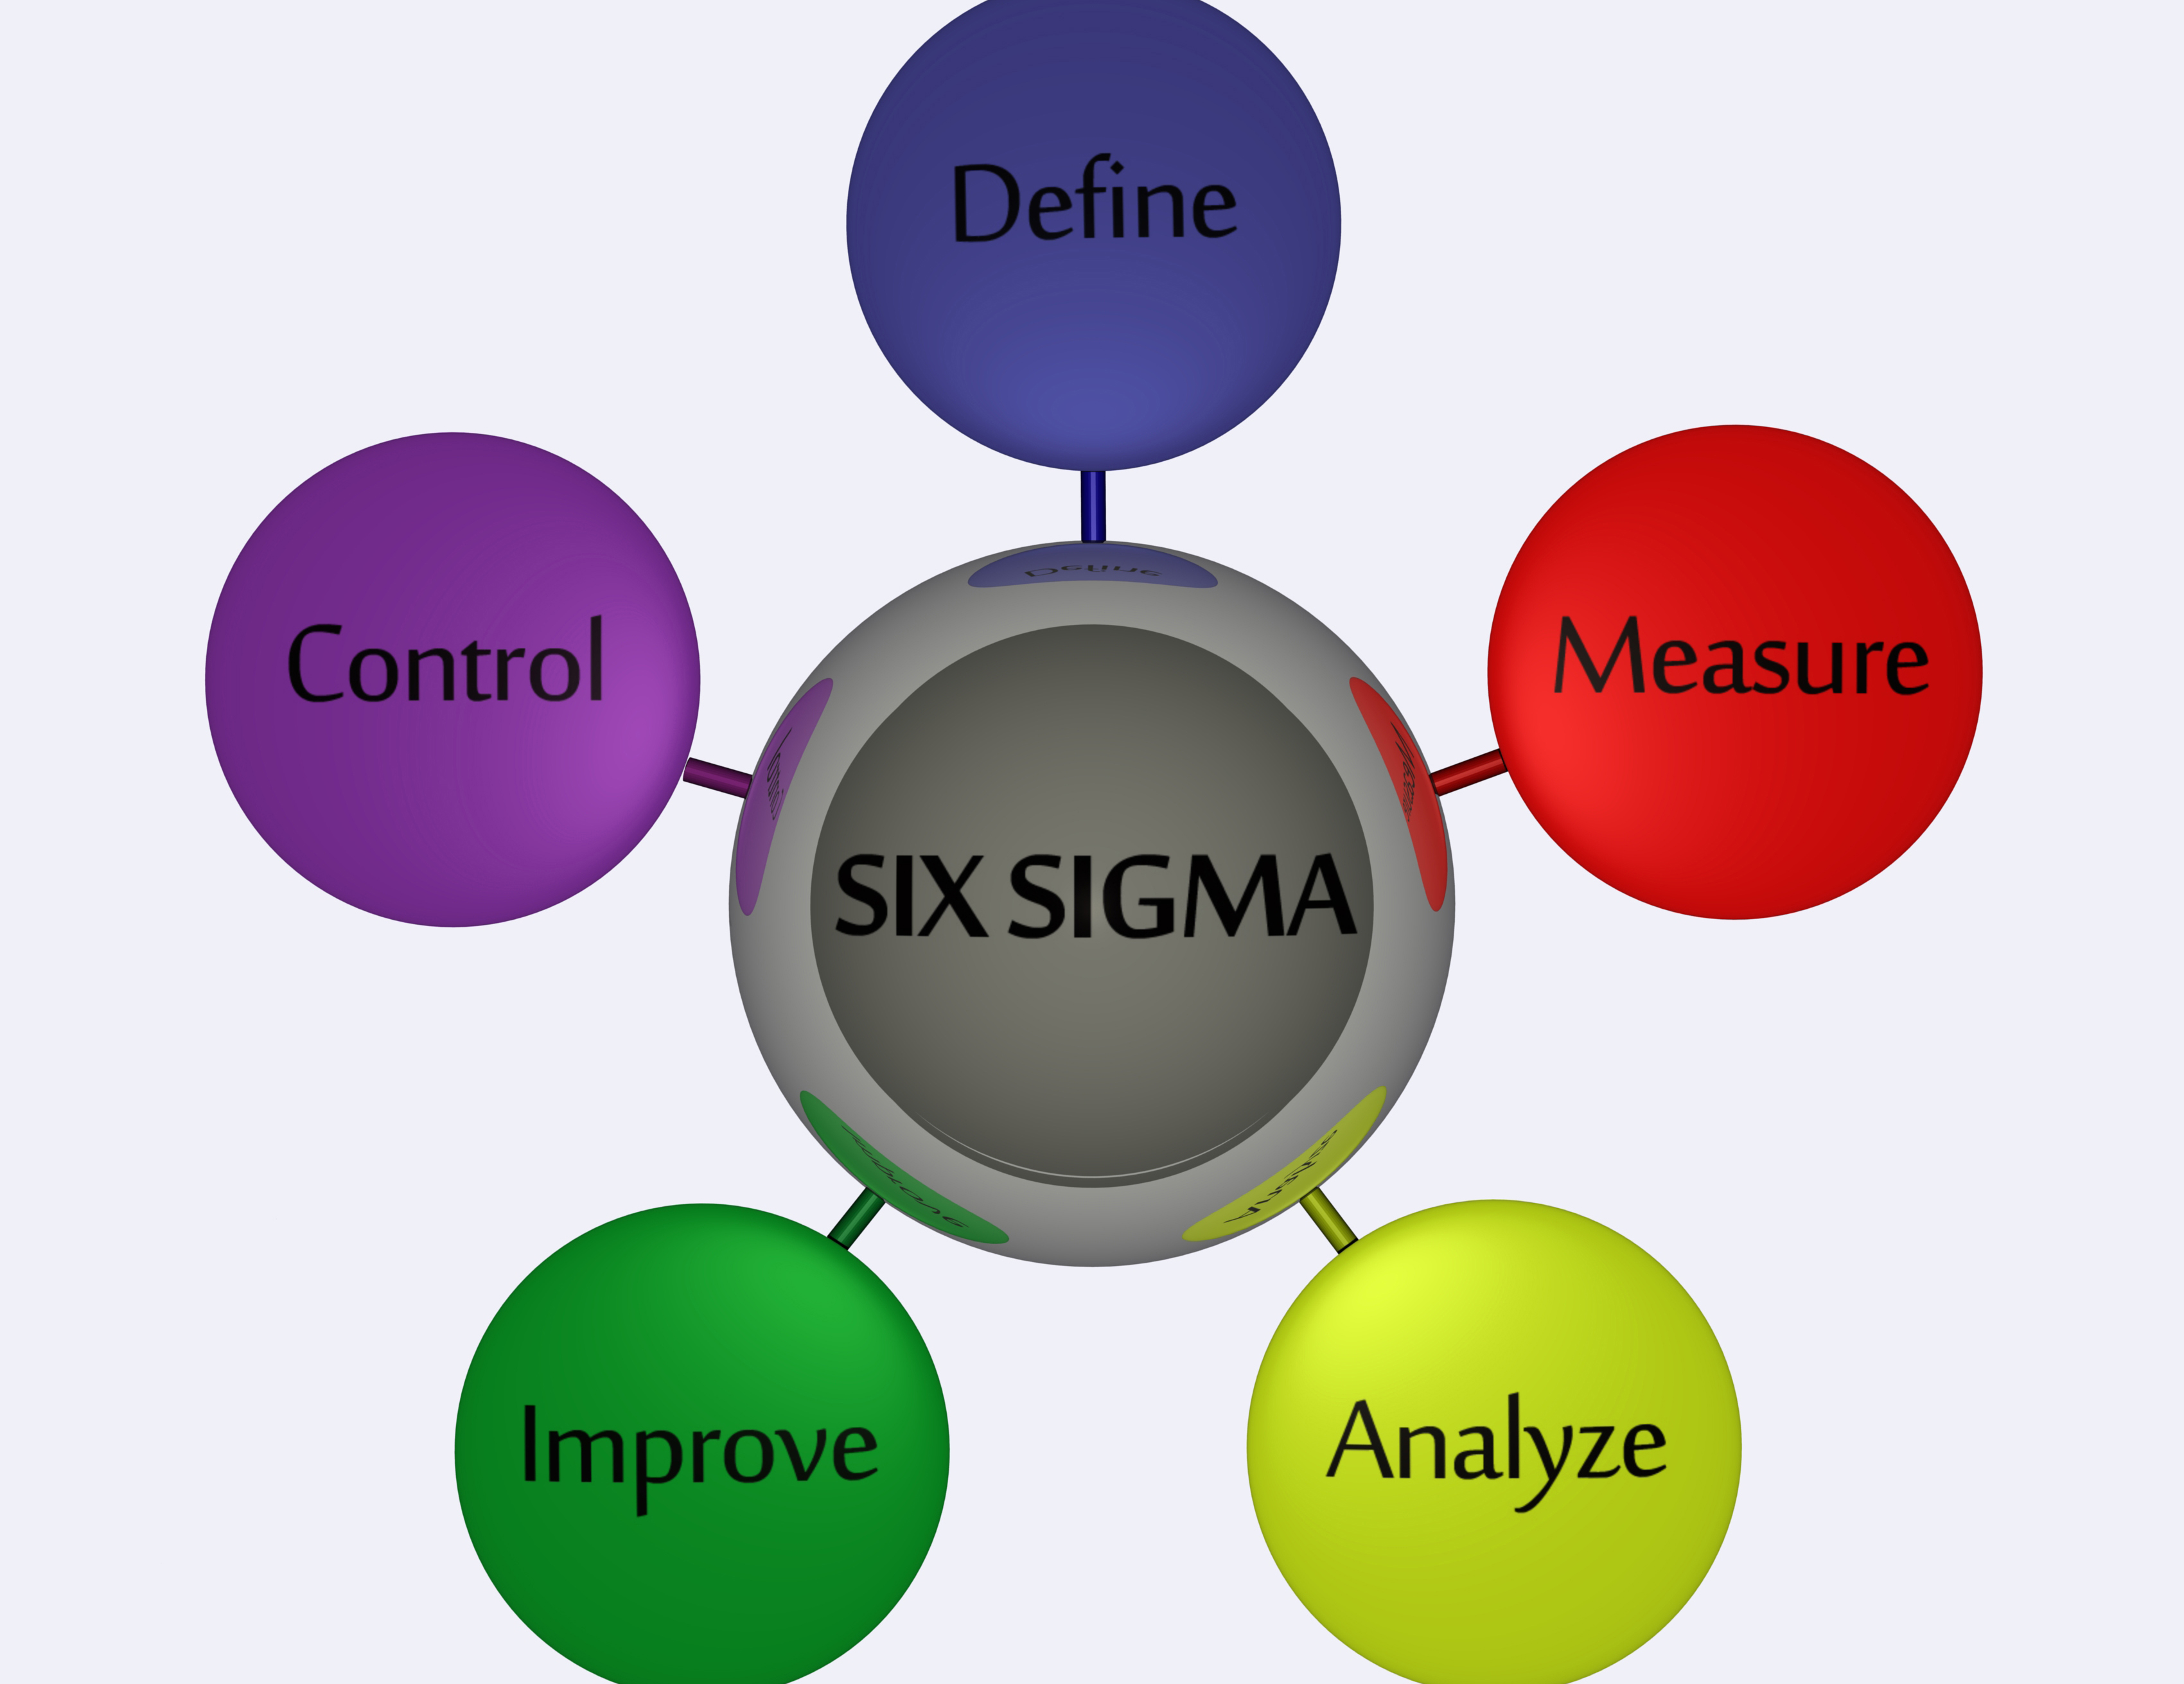 The power of Lean Six Sigma - American Nurse Today